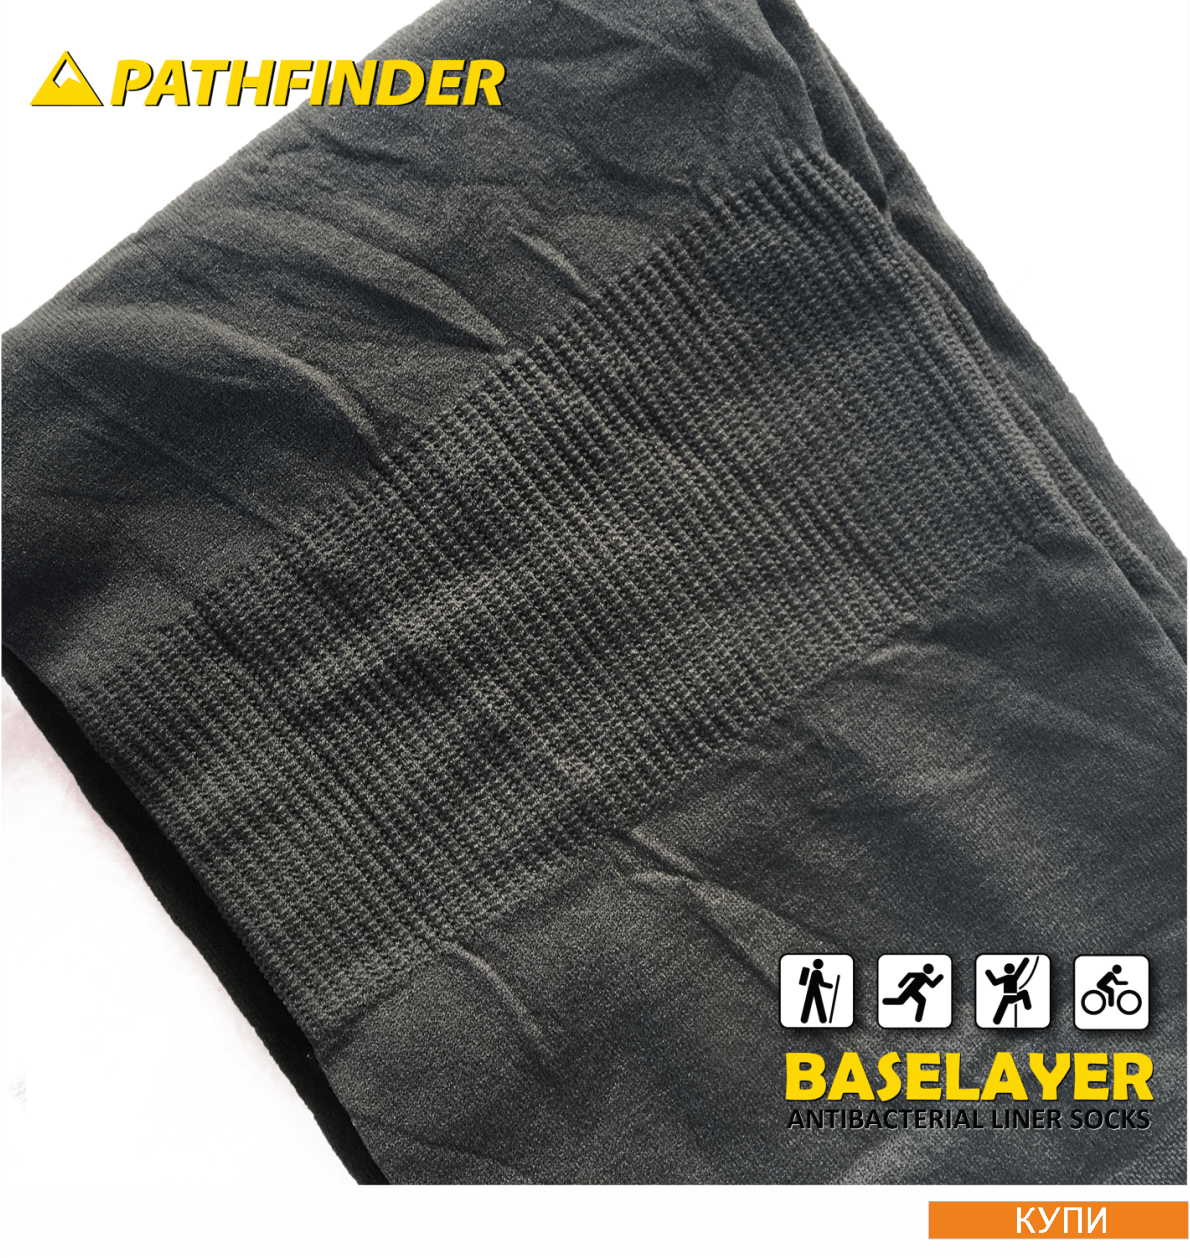 Спортни Чорапи Baselayer Pathfinder Outdoor